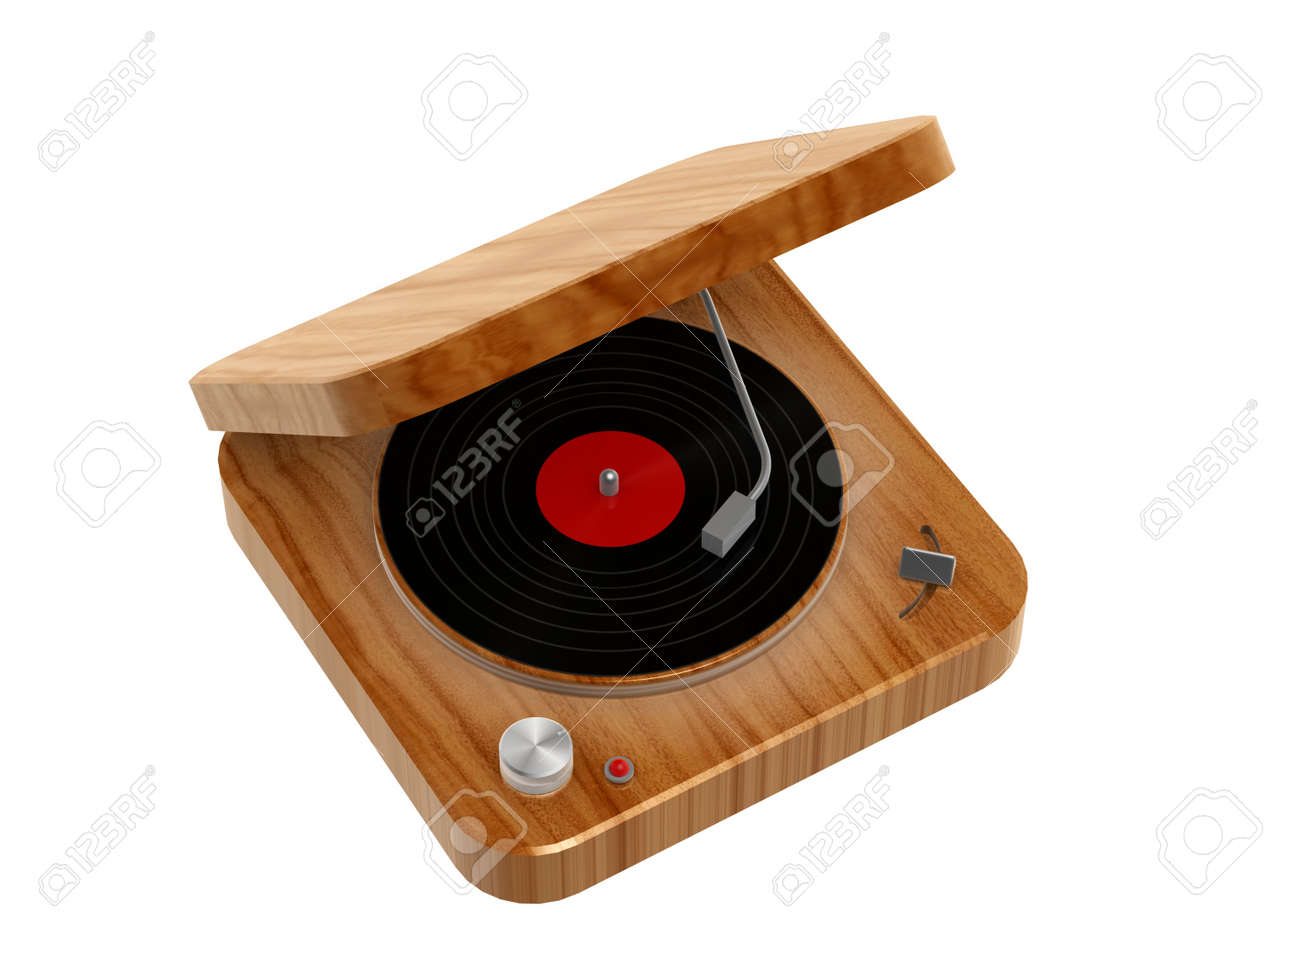 3d wooden Phonograph isolated on white background Stock Photo - 14019536